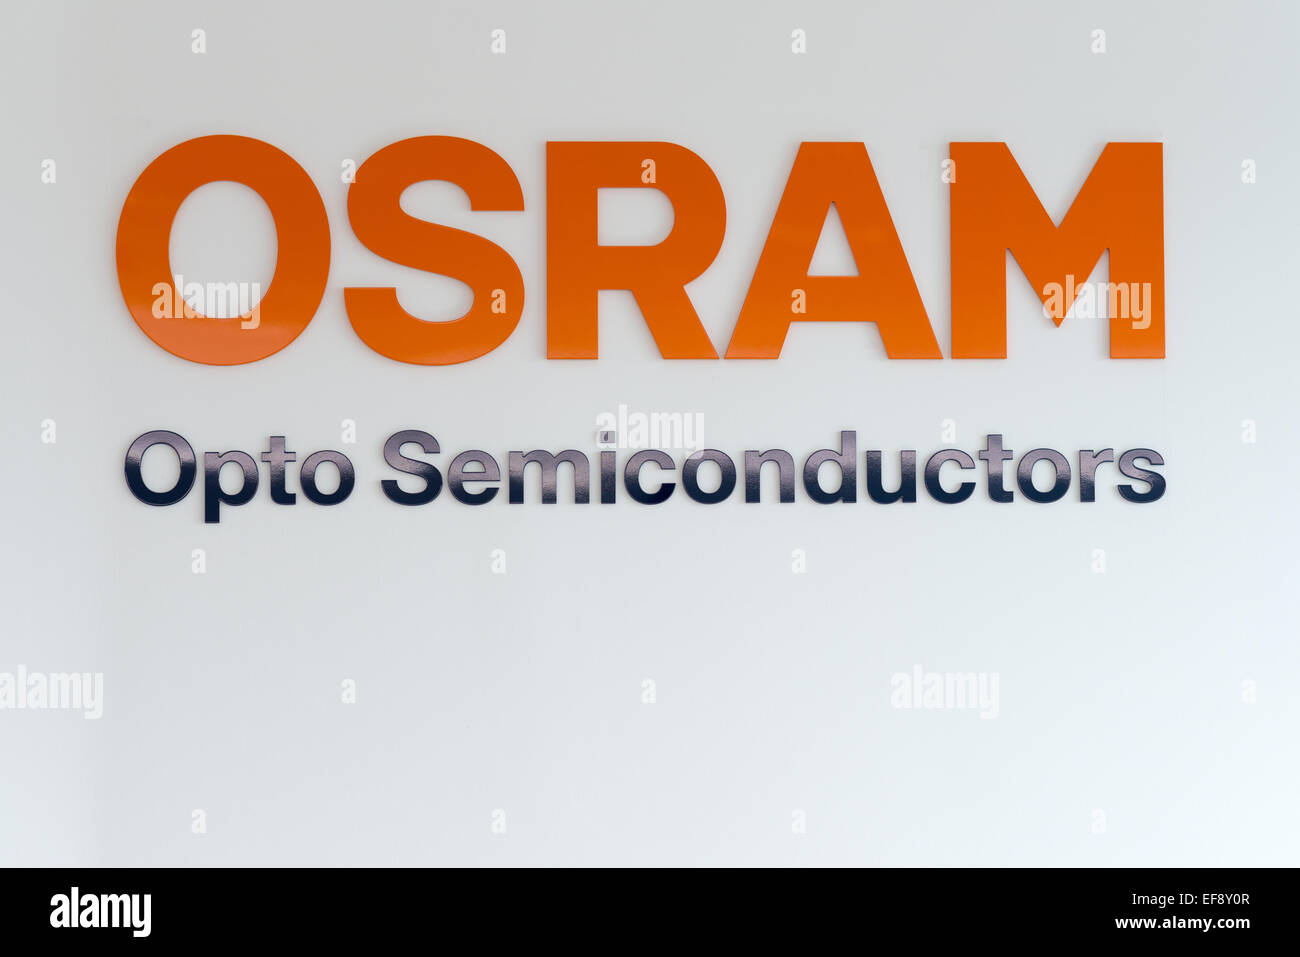 osram ag stock photos osram ag stock images alamy